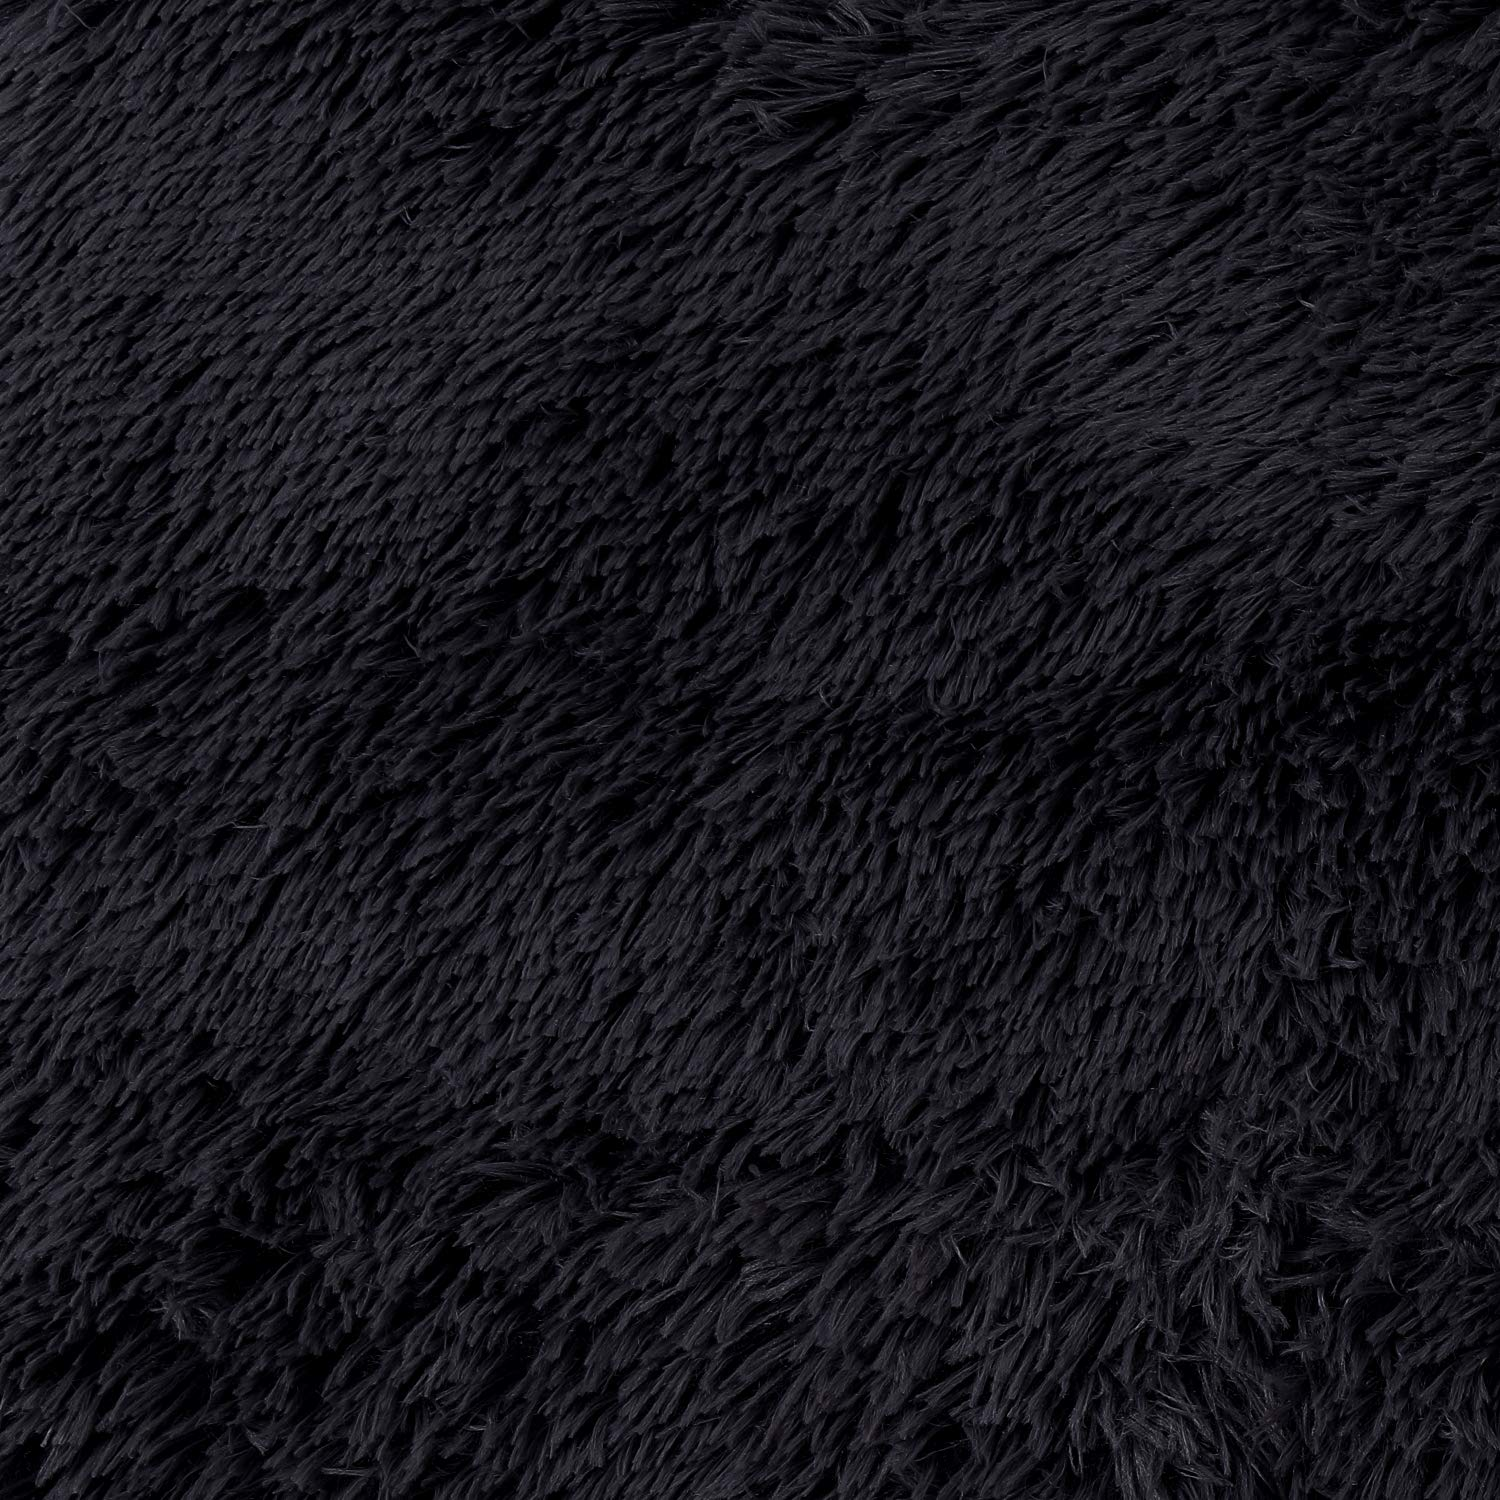 SANMU Soft Round Rug,Fluffy Silky Carpet Fashion Color Smooth Bedroom Mats Round Shag Floor Pad for Girls Bedroom Decorate and Indoor Use,4 Feet,Black by Softlife (Image #7)